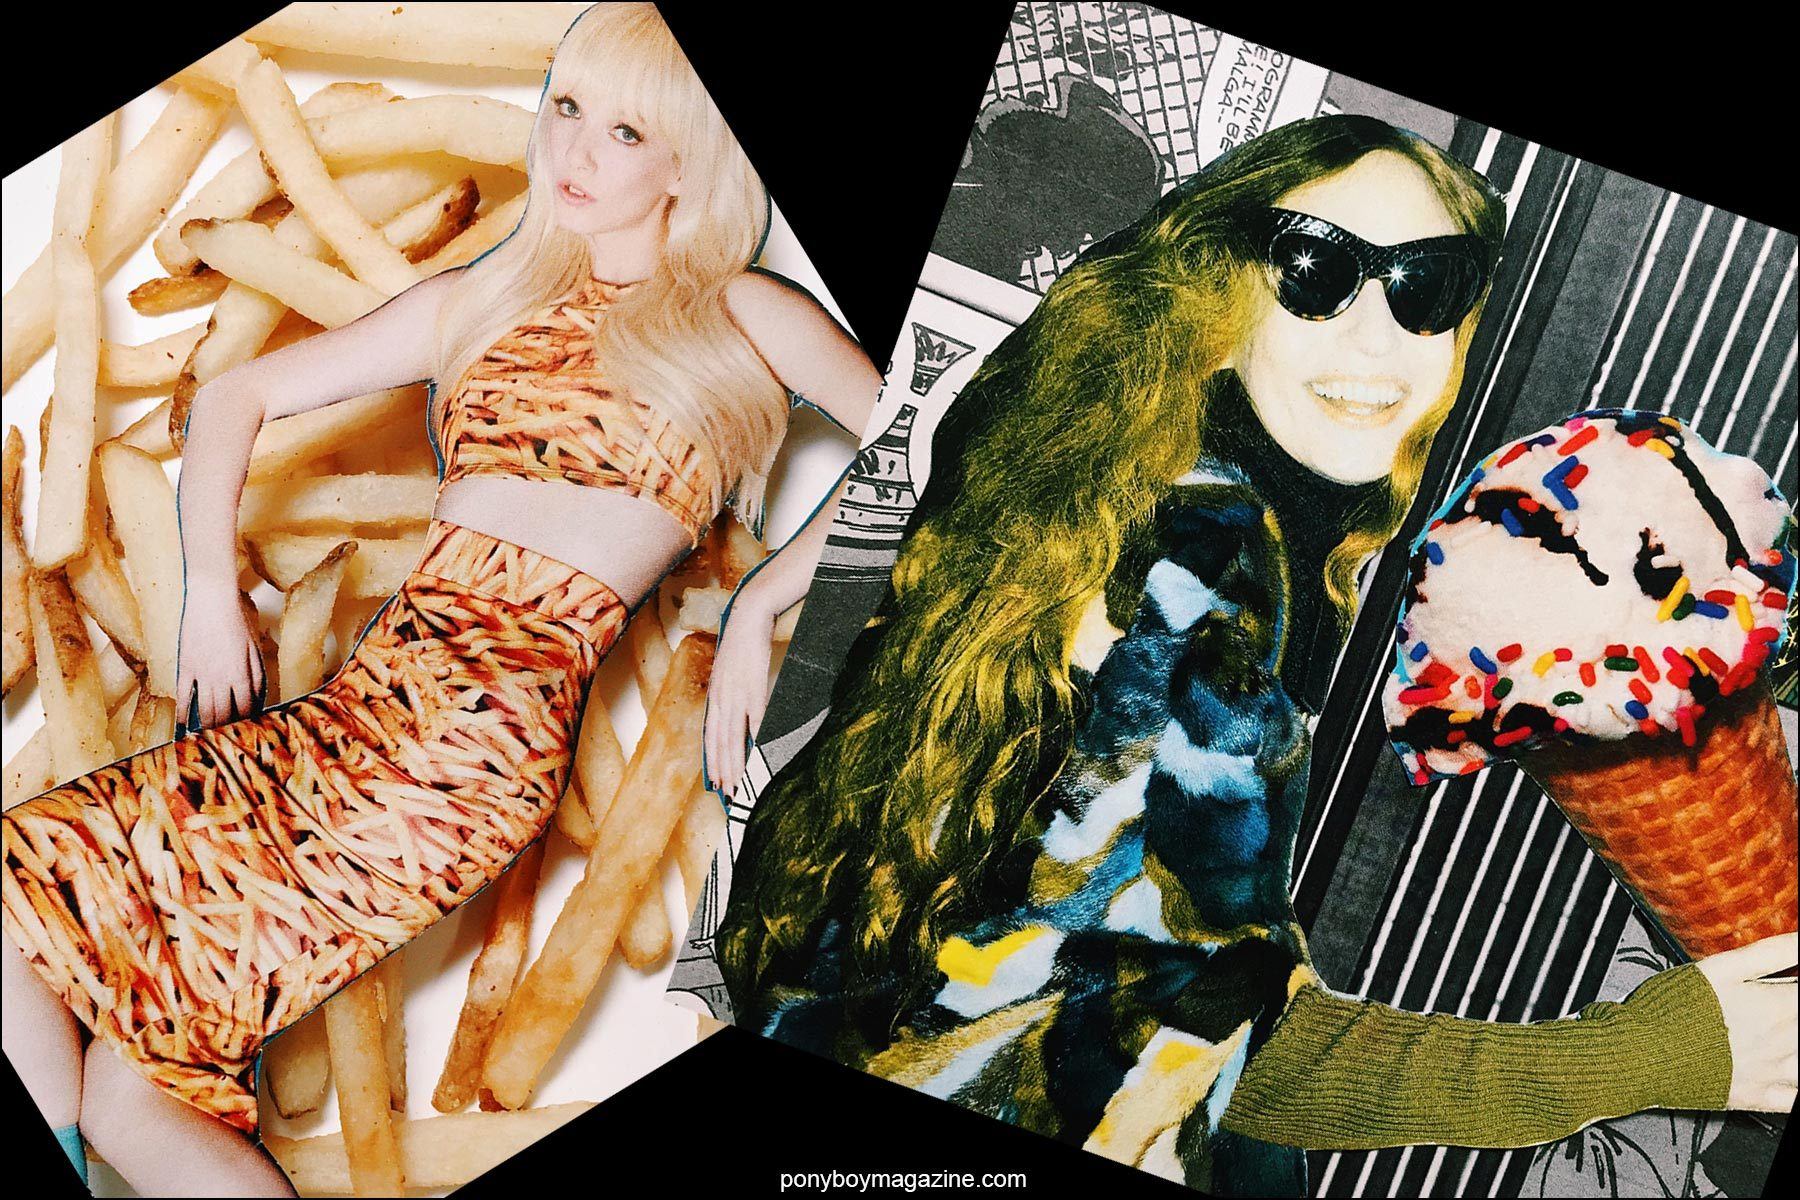 Collage artwork of french fry fashion image and Sonia Rykiel images by Patrick Keohane for RS Theory. Ponyboy magazine NY.